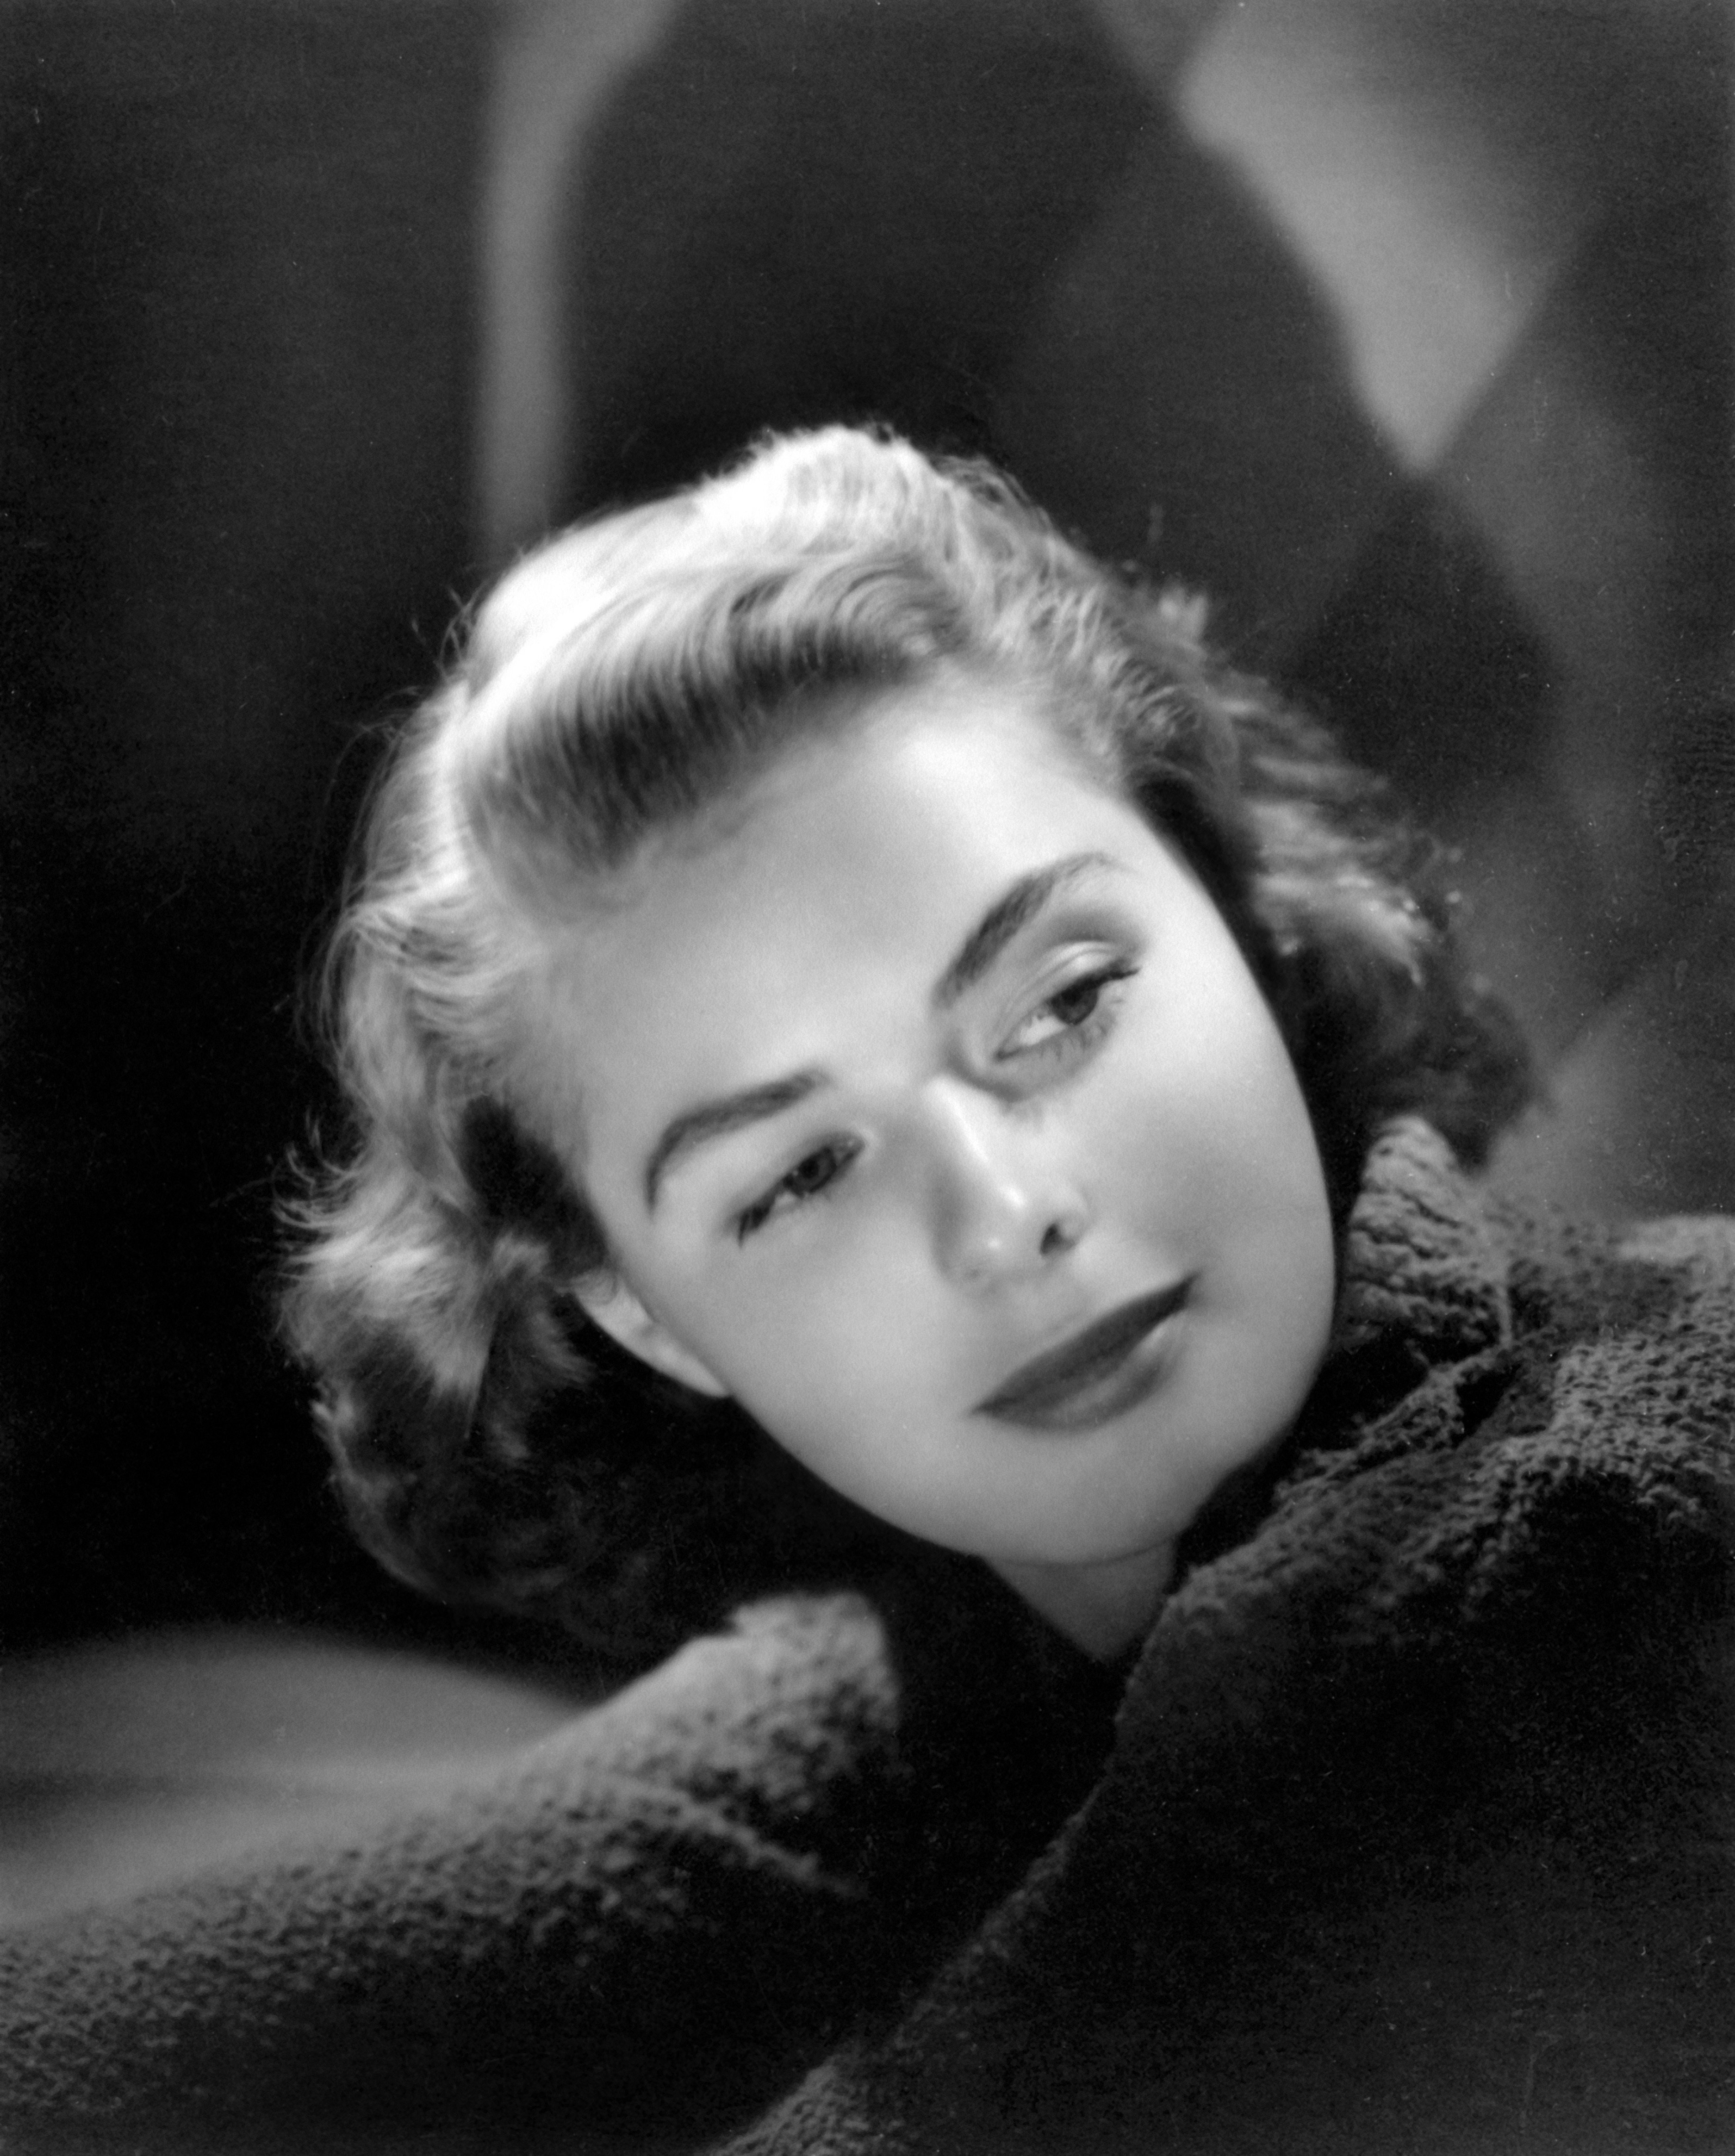 Ingrid Bergman, Swedish actress and film star, 1940 | Photo: GettyImages